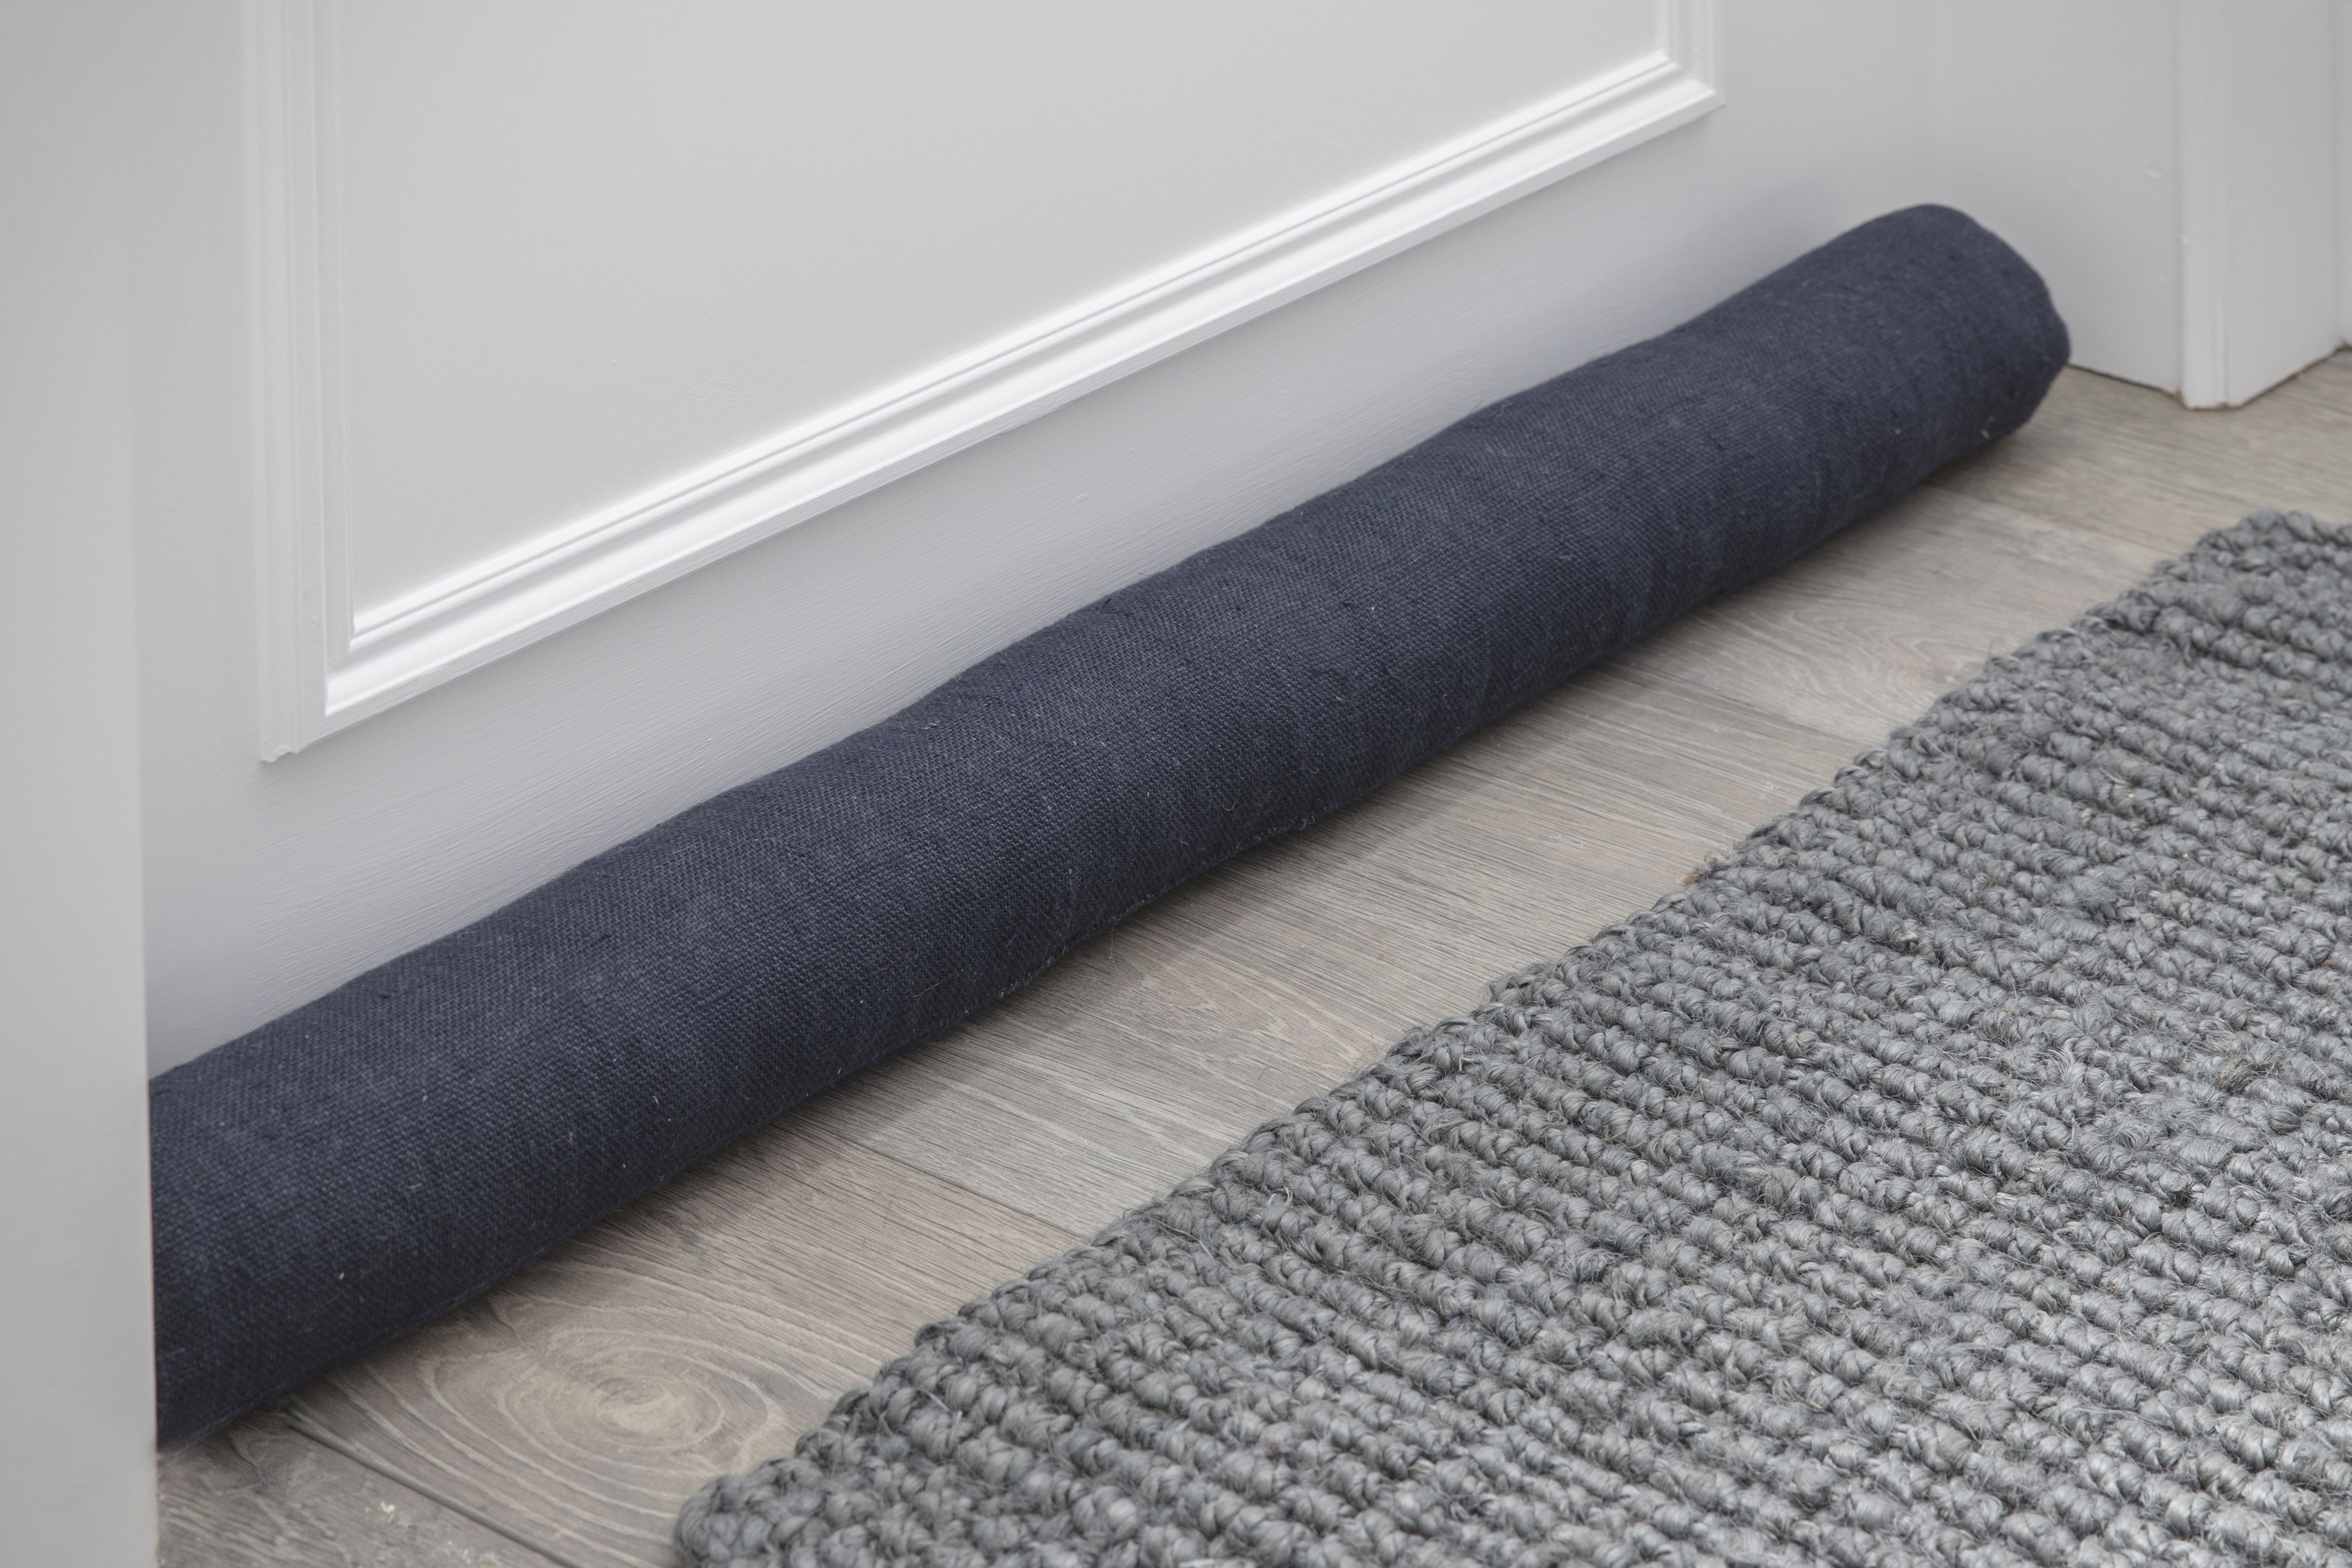 Garden Trading Compton Draught Excluder in Carbon - Linen